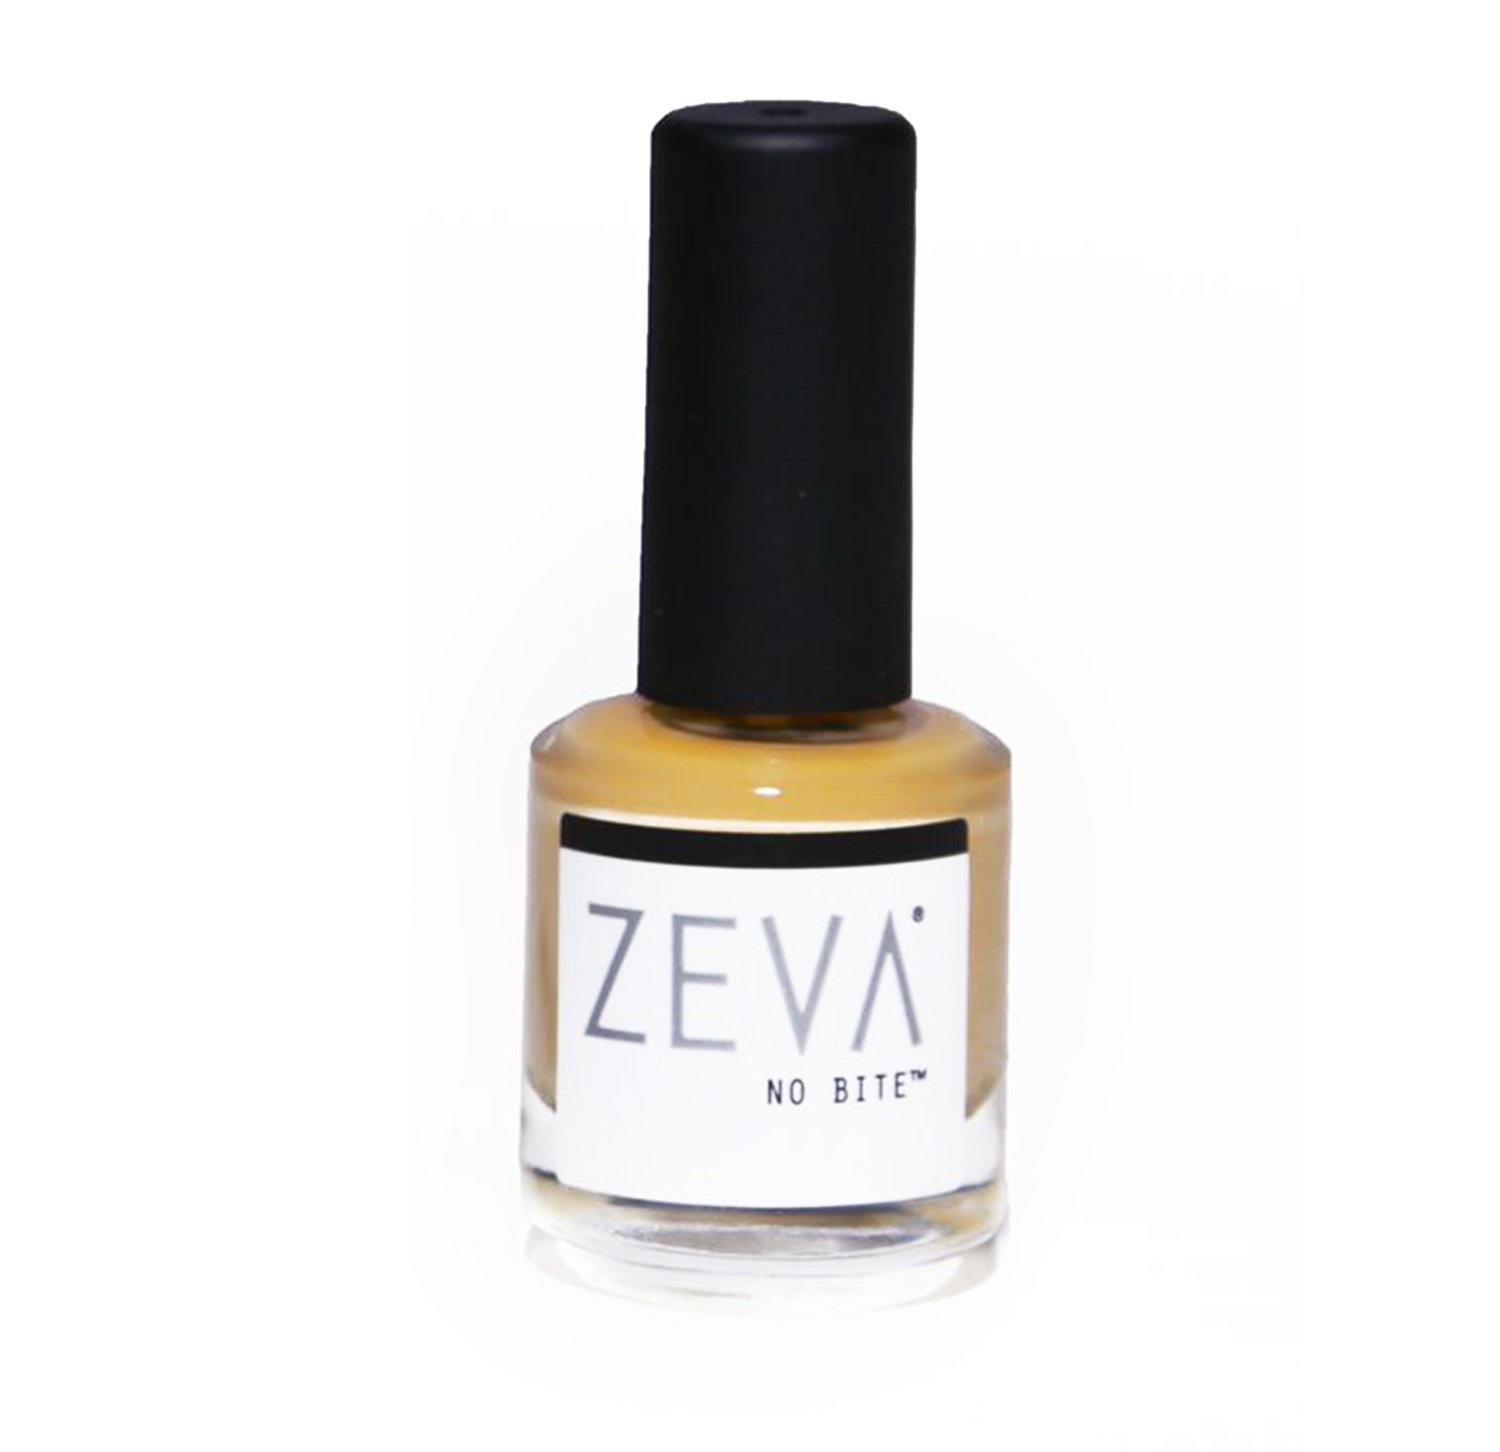 Buy Zeva No Bite - Smart Delay™ formula - Stops Nail Biting - .5 Fl ...